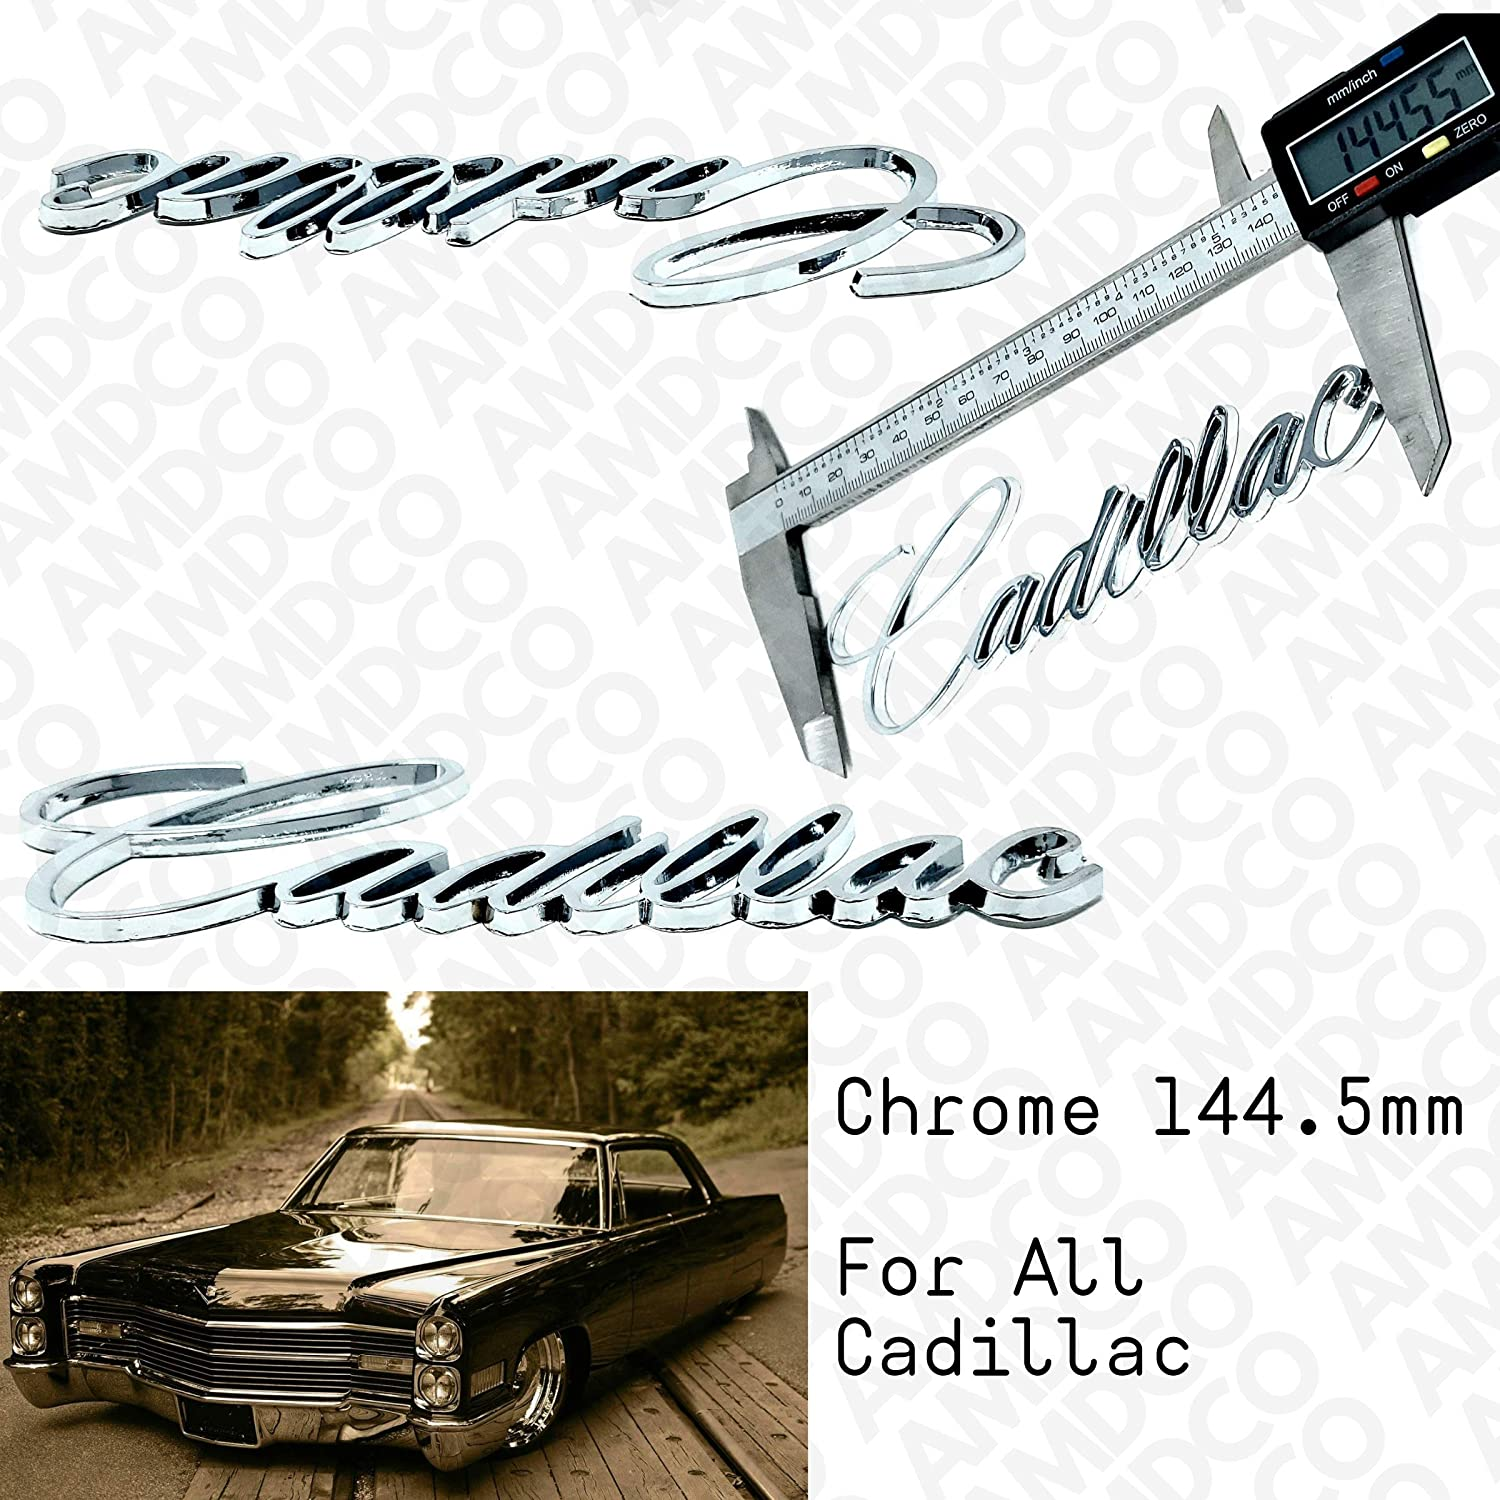 CHROME for CADI CTS ATS Escalade XTS Emblem Badge Stickers Decals with Strong 3M Includes instructions MEASURE Before Purchase pack of 1 AMDCO